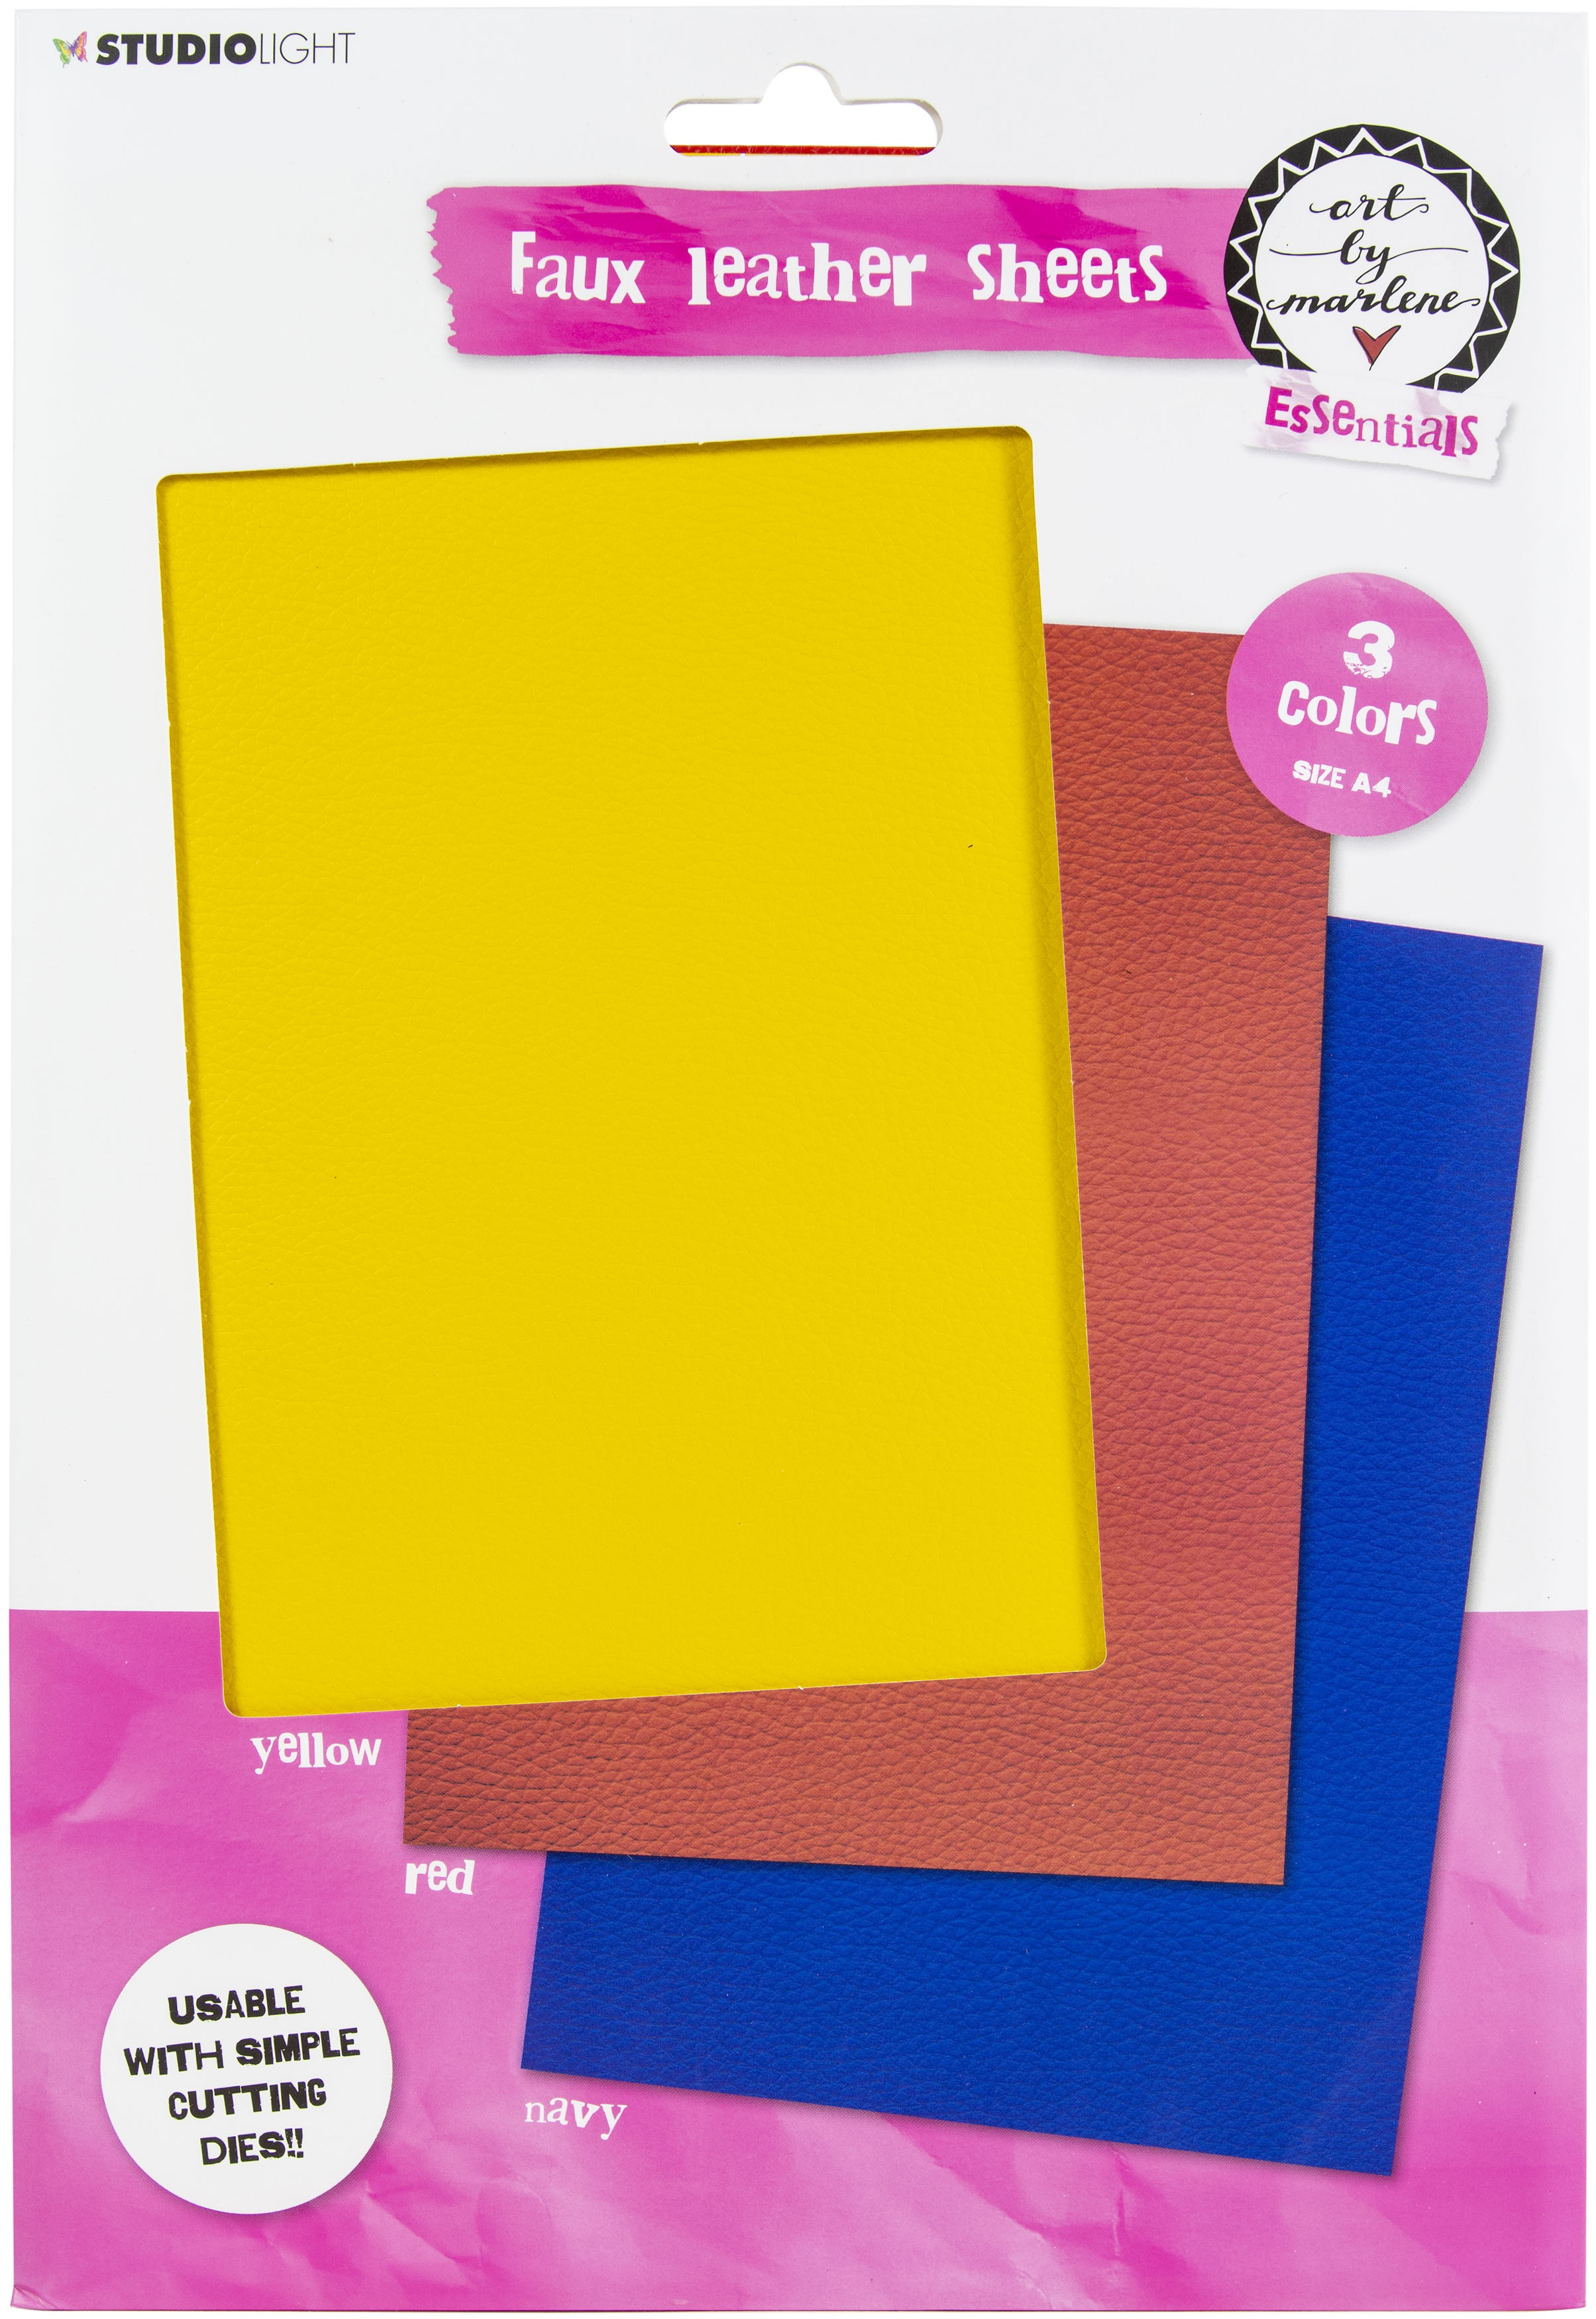 Art By Marlene - Faux Leather Sheets - Yellow, Red & Blue